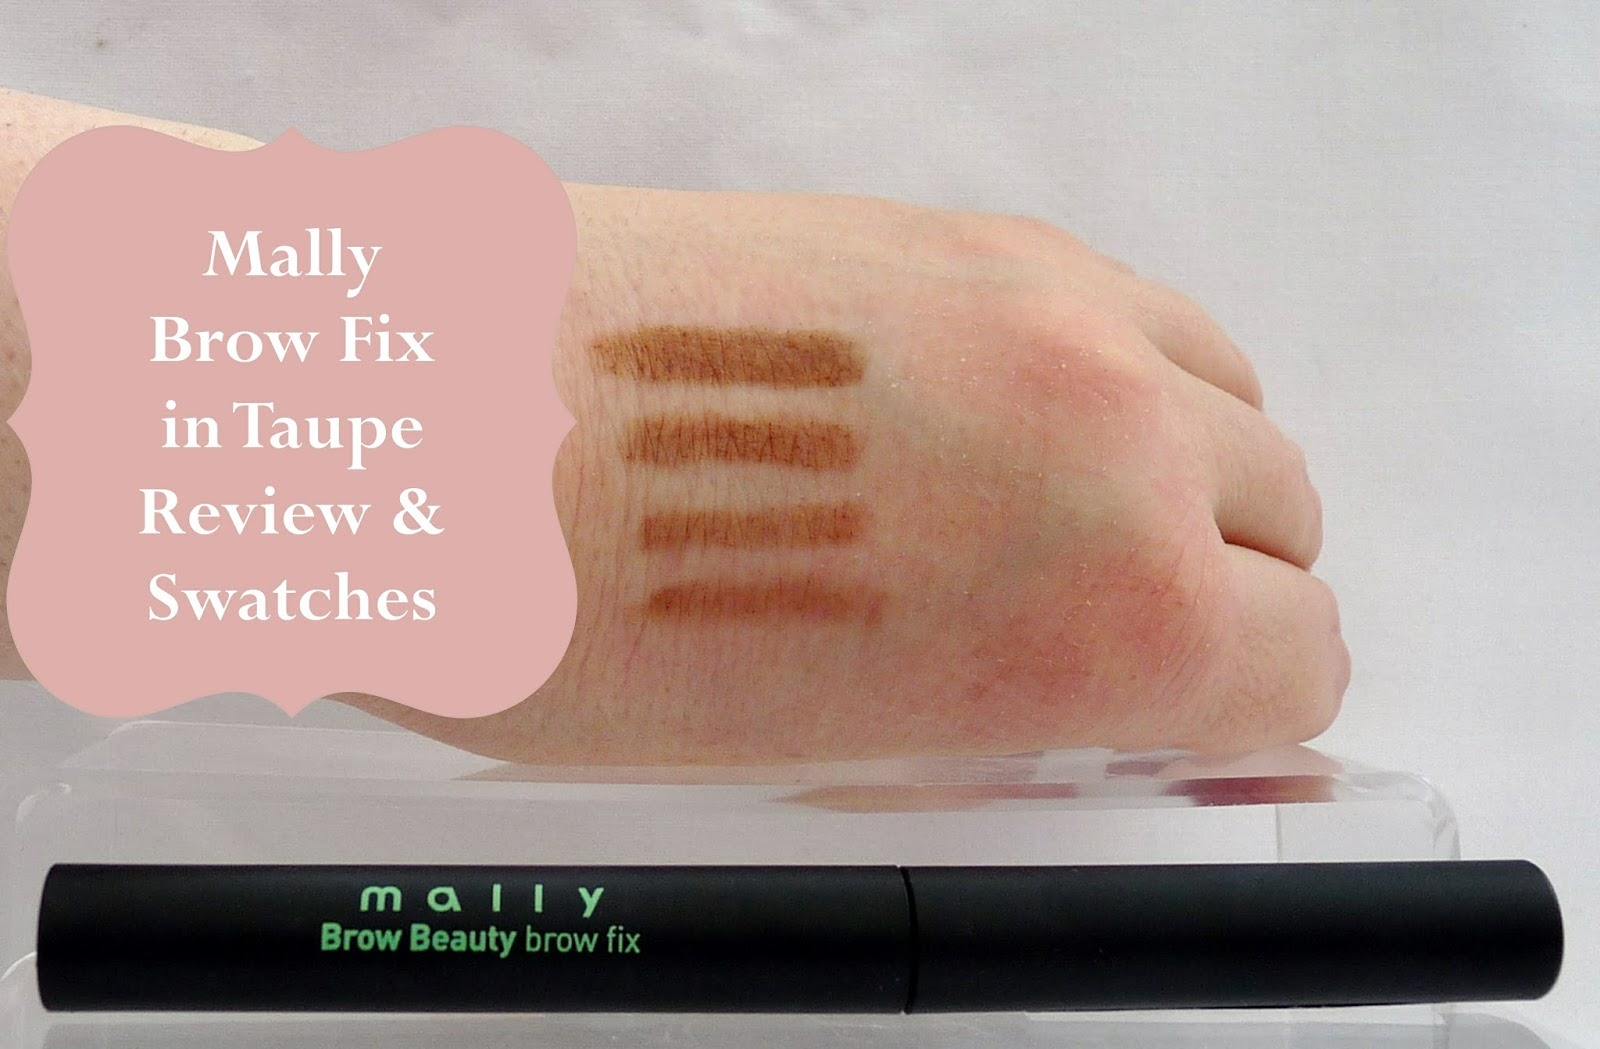 Mally Brow Fix Taupe Review & Swatches